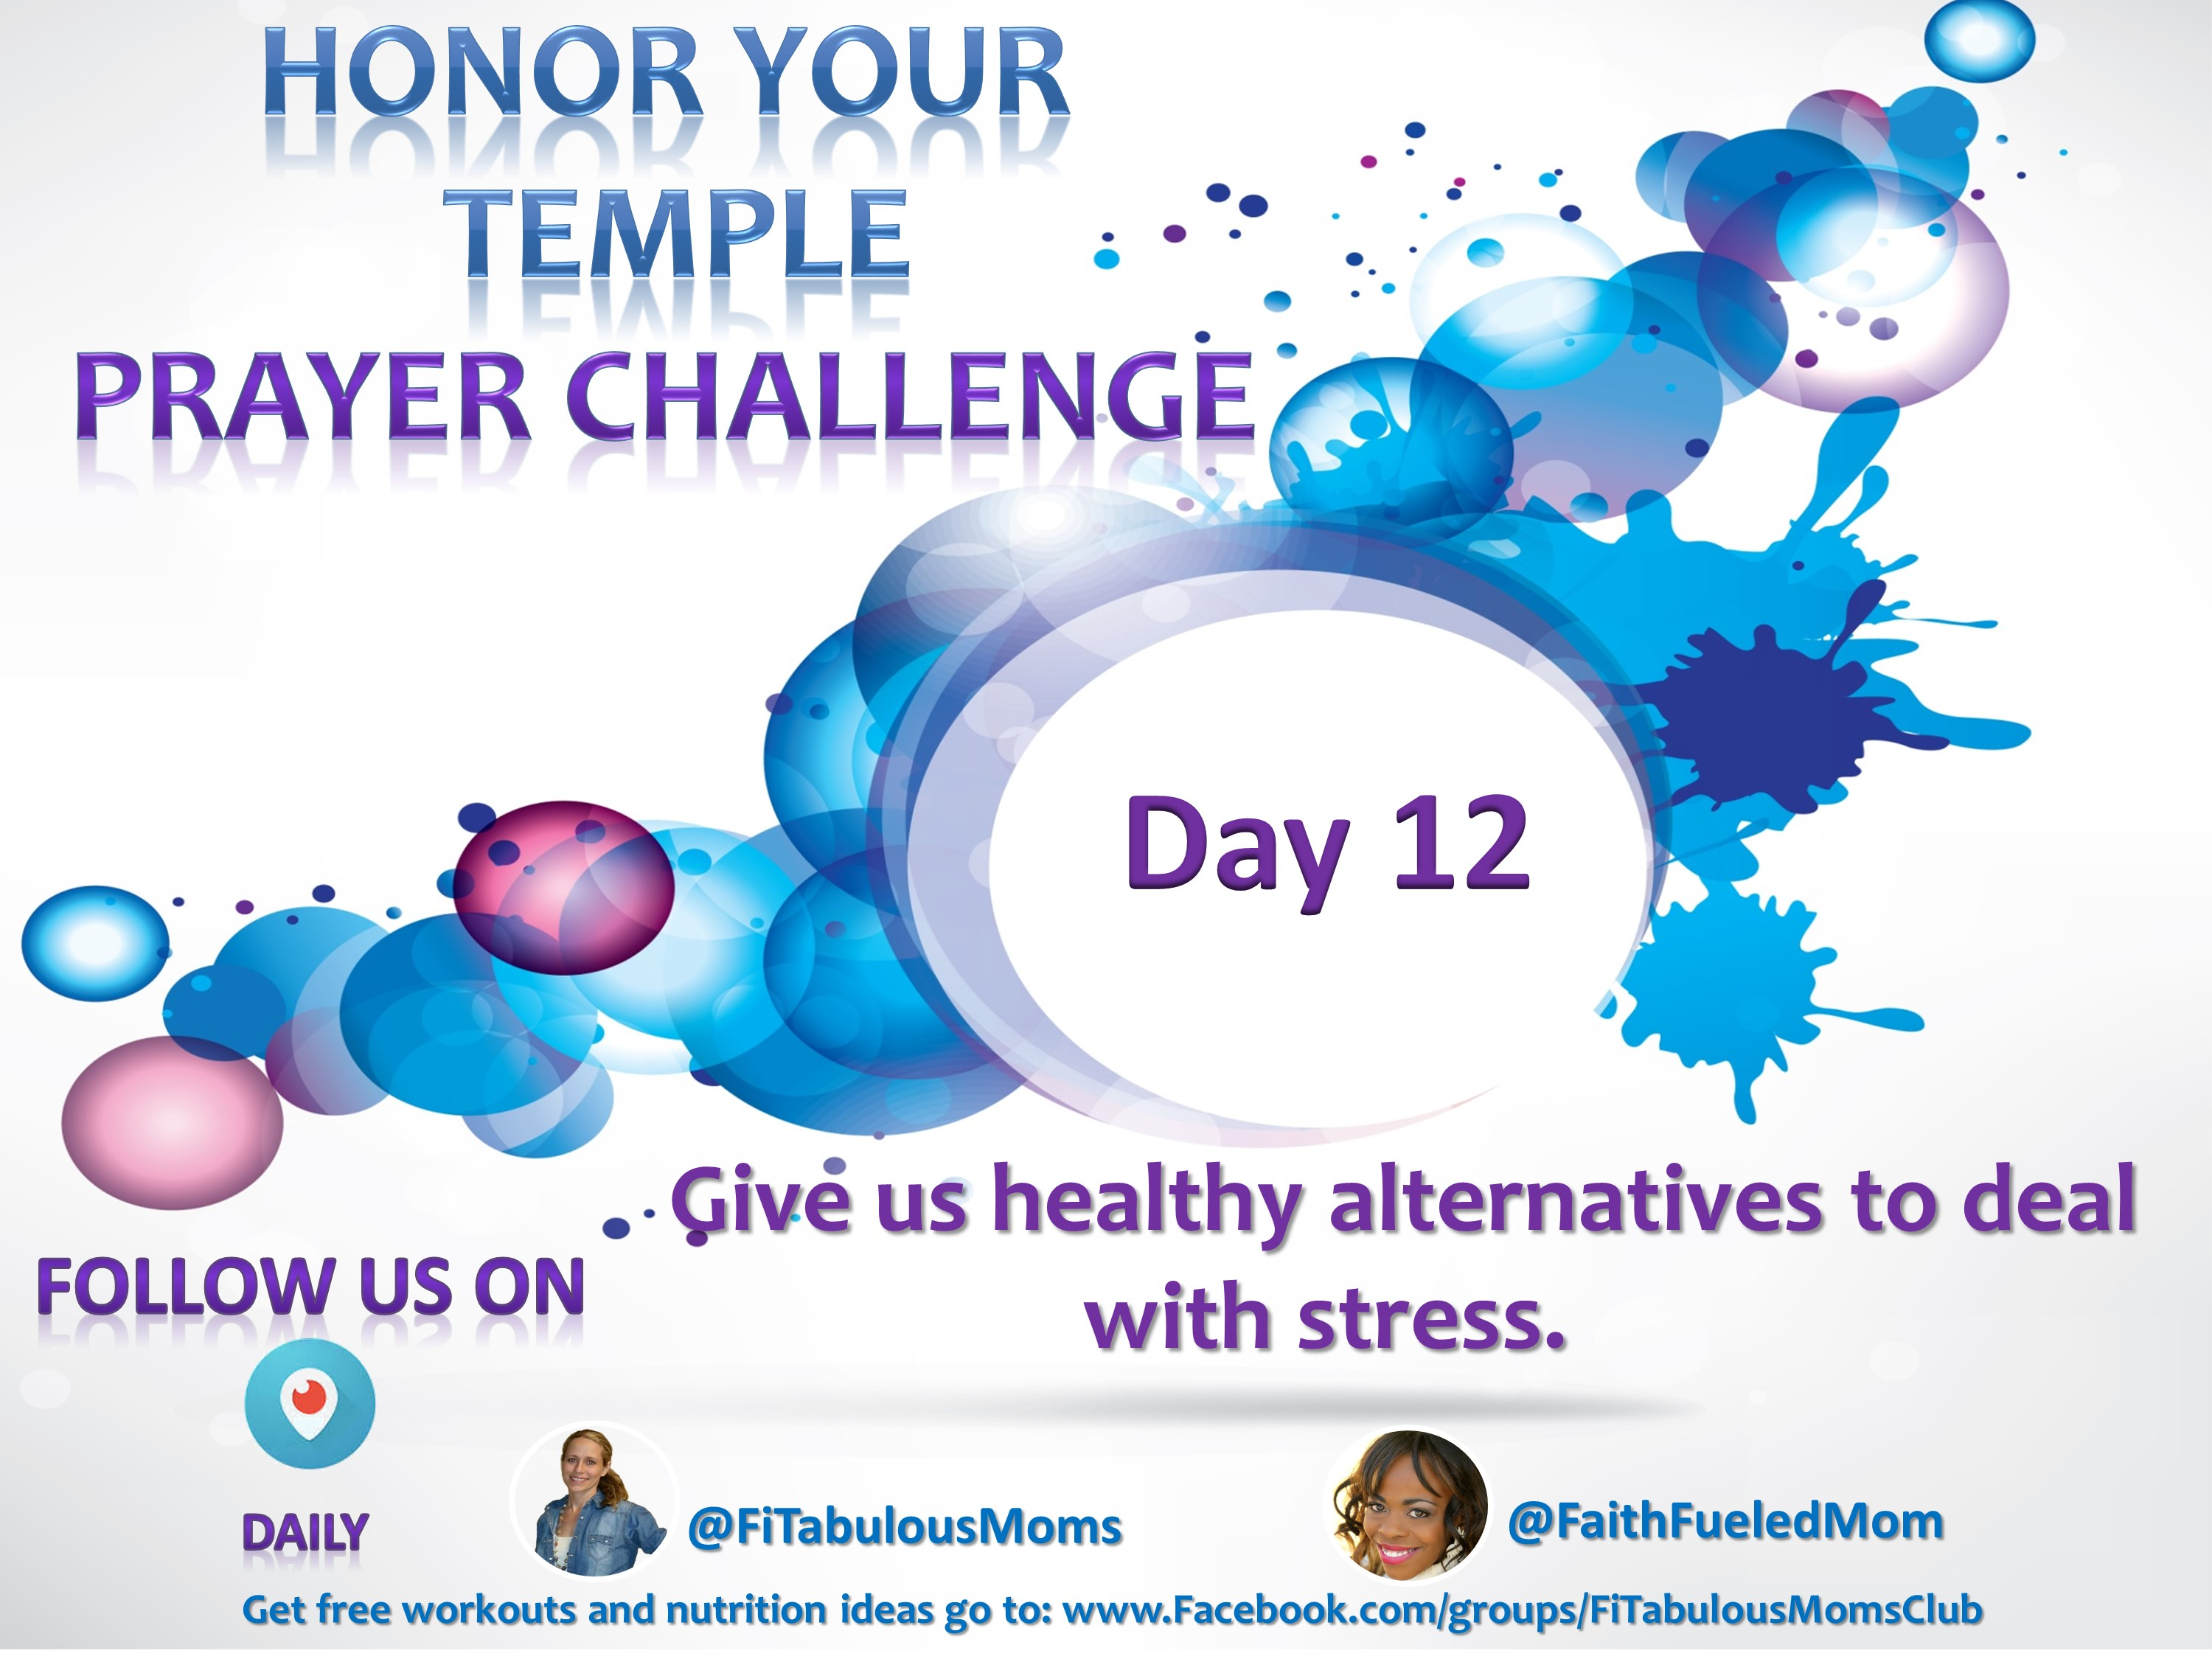 Day 12 Honor Your Temple Prayer Challenge